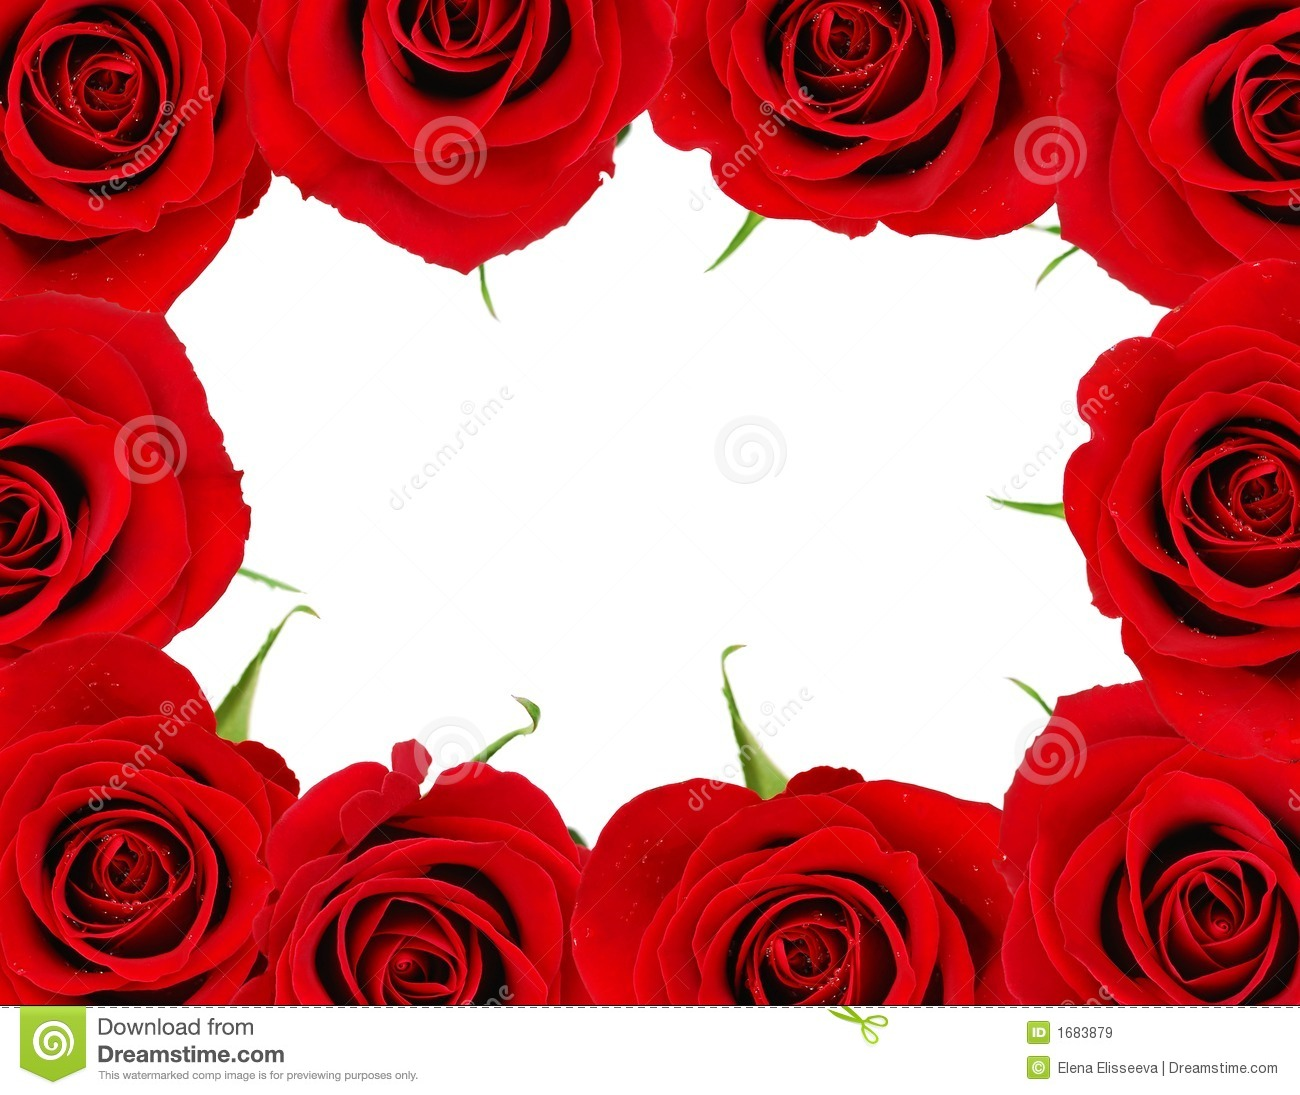 Red roses frame with white space for copy for Valentine's day.